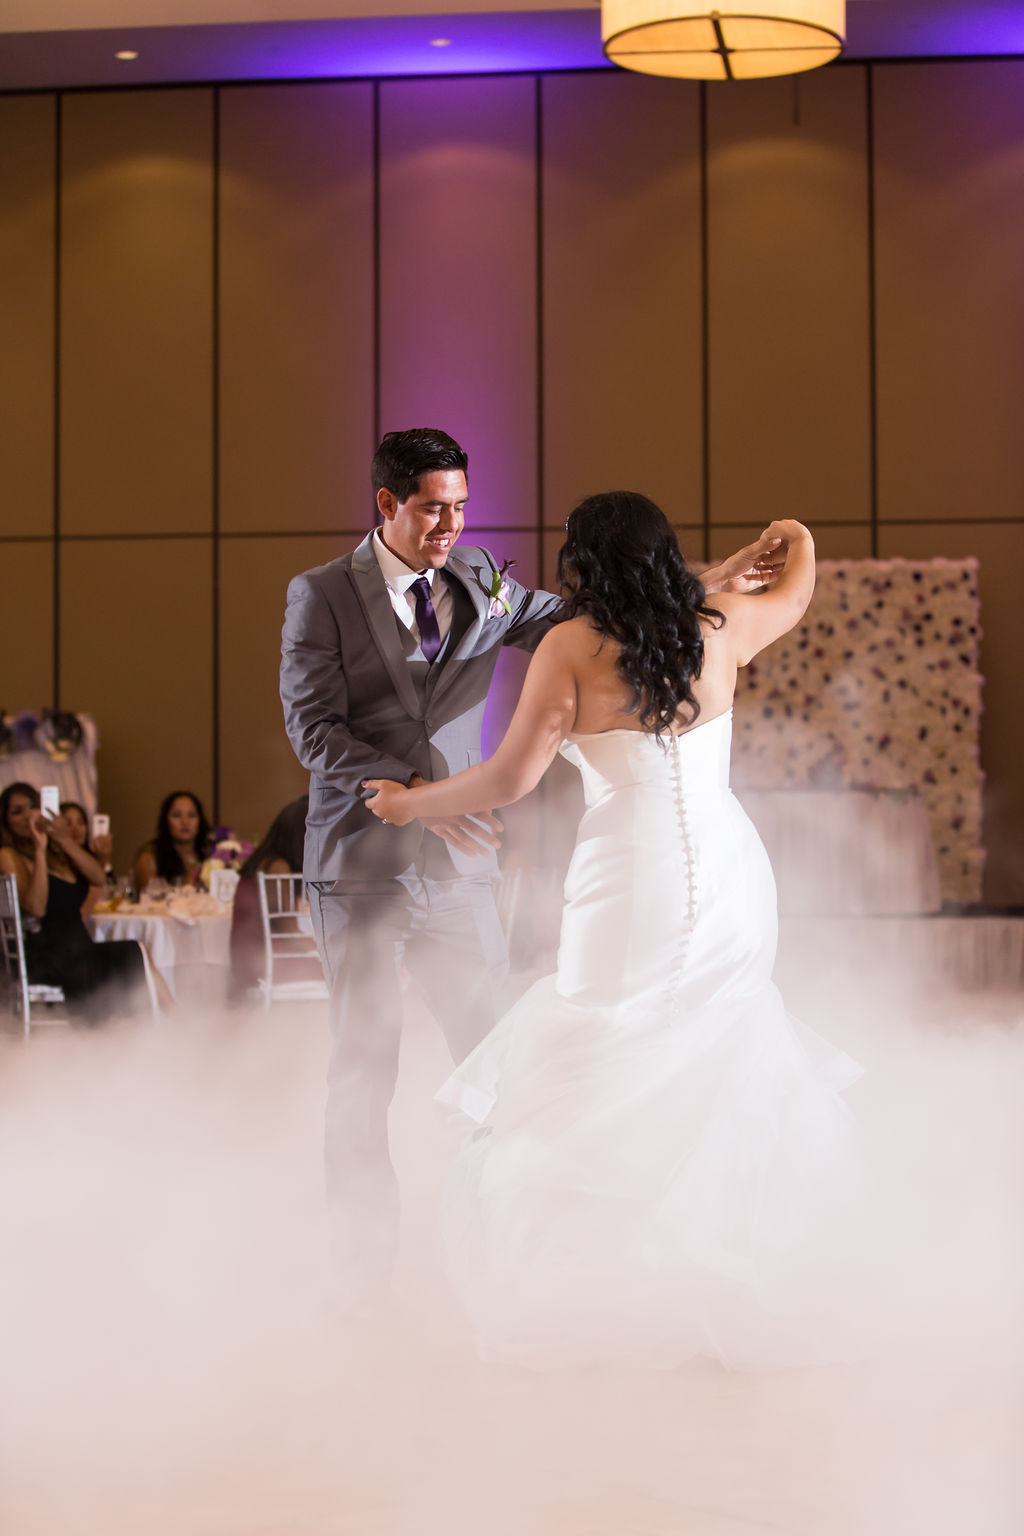 SheratonHotelPomonaWedding-Mabel&Omar(276of390).jpg